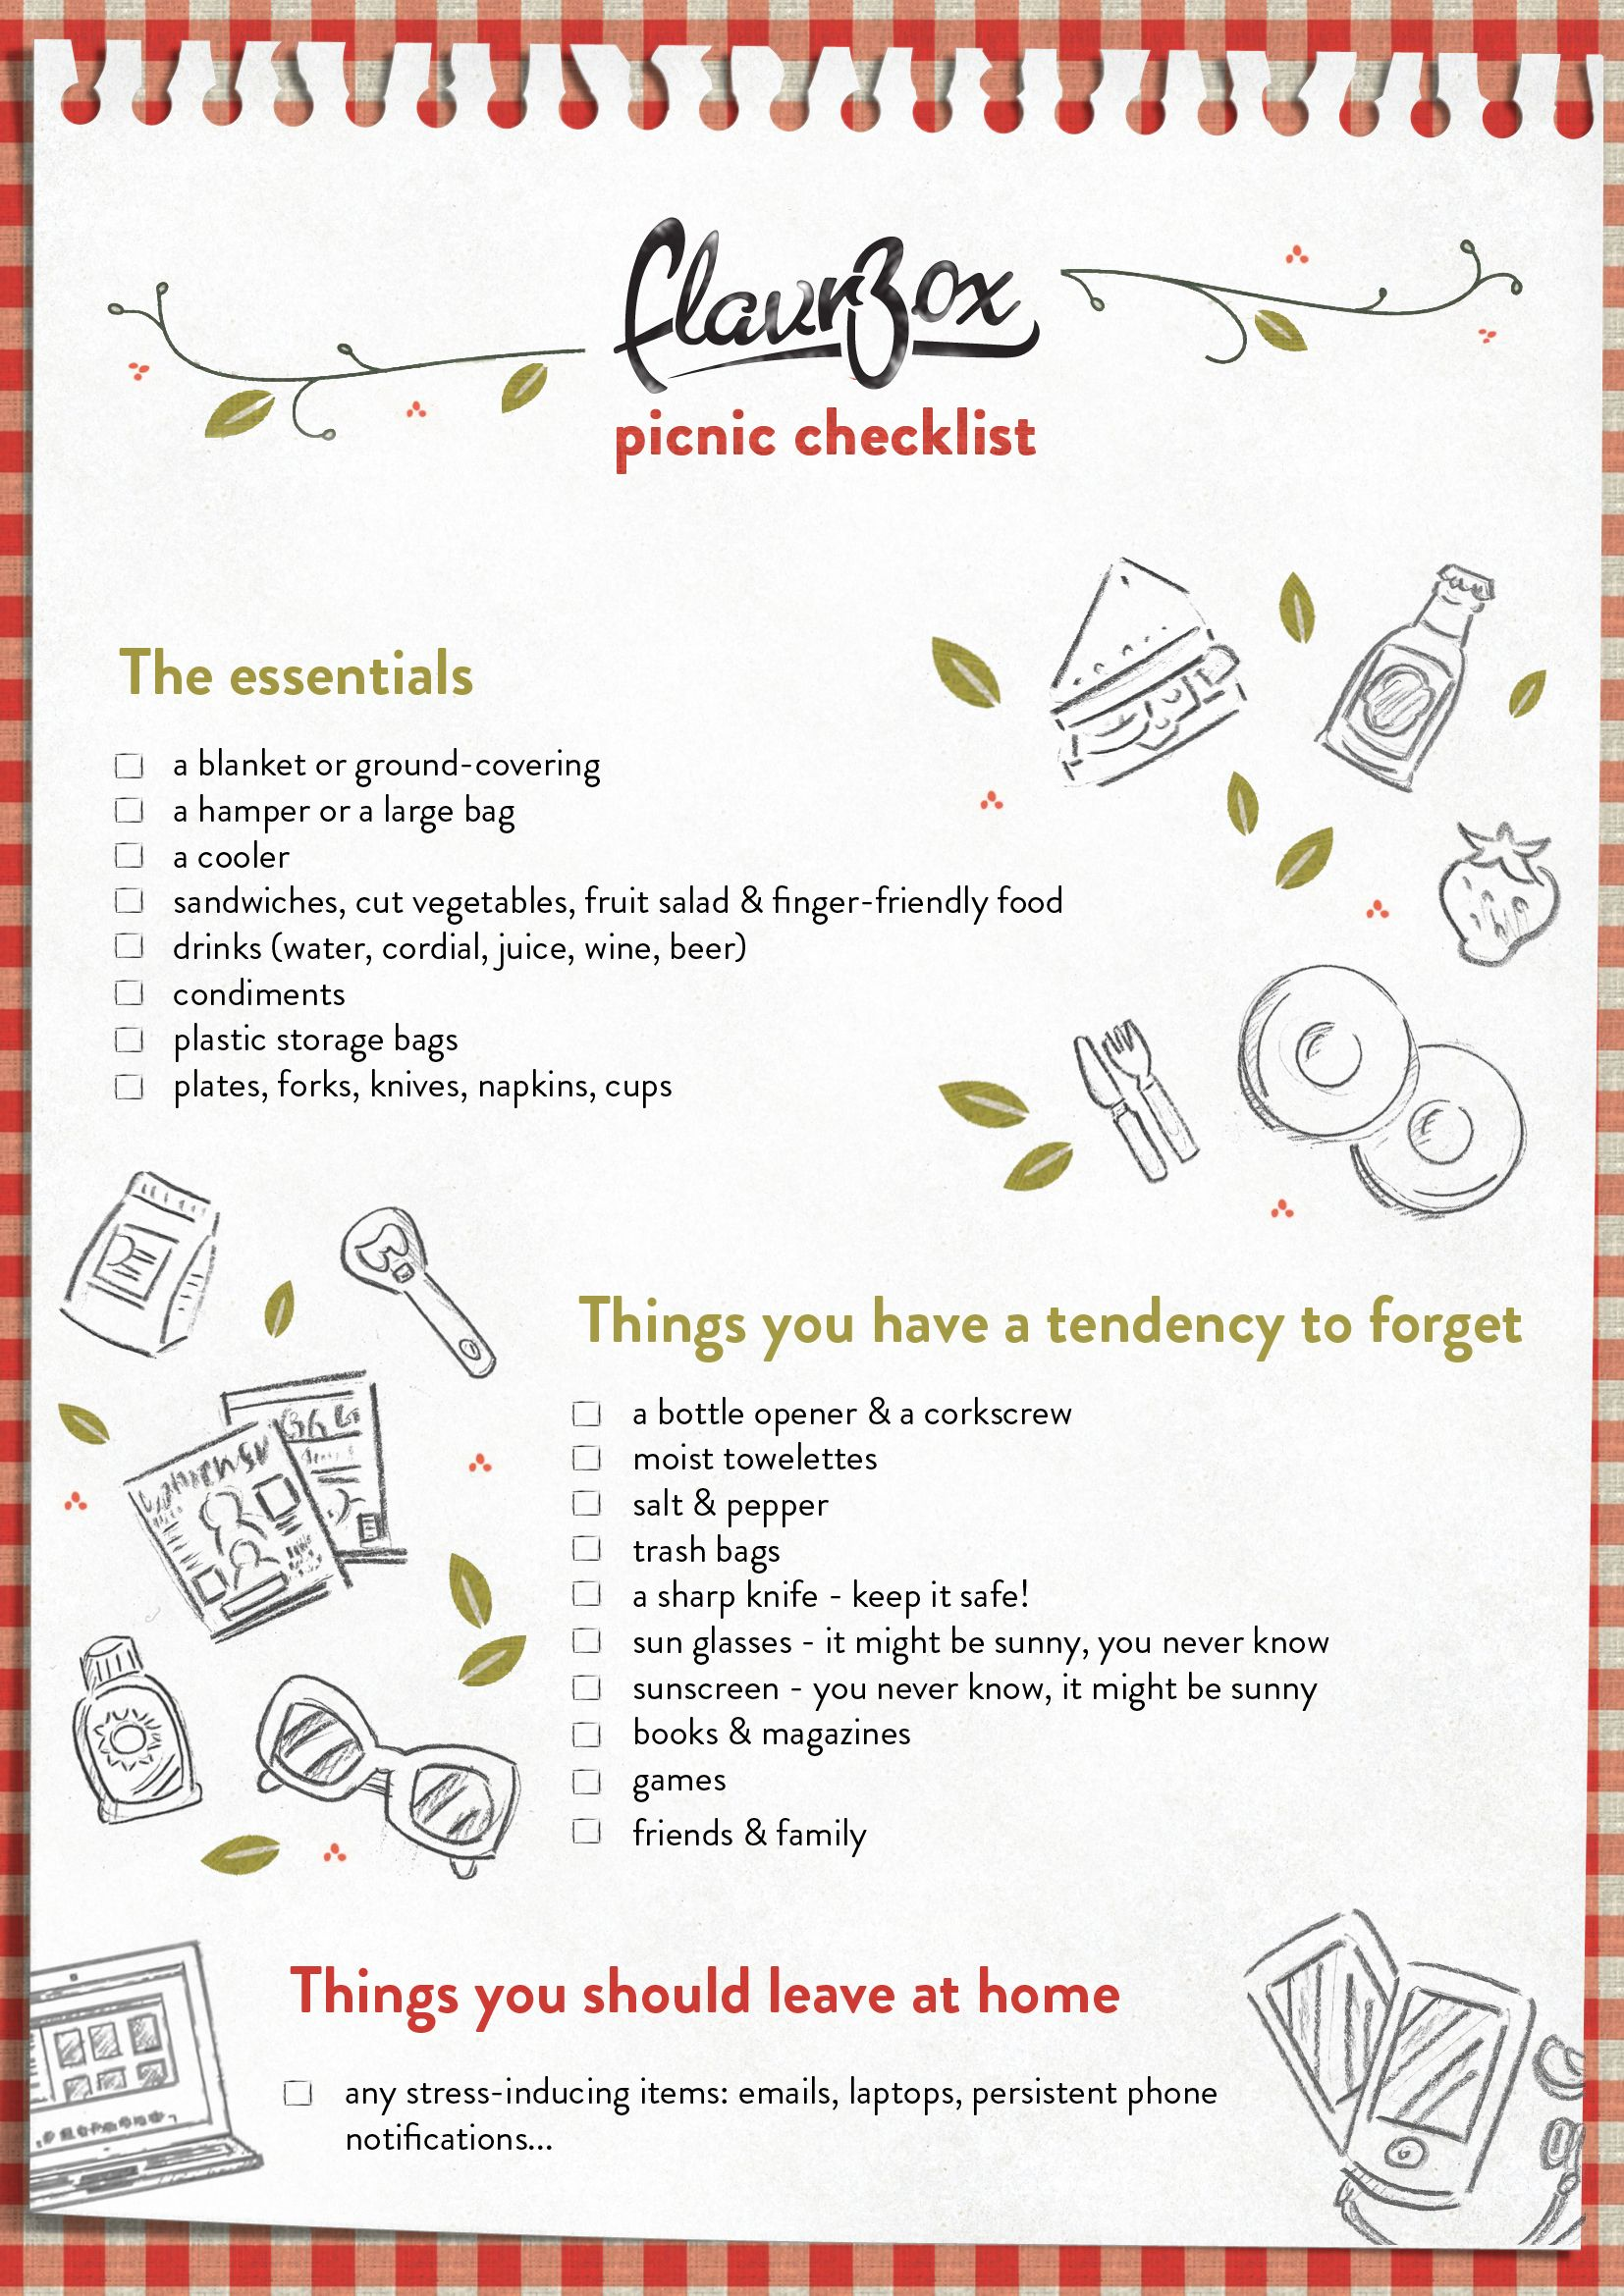 Pin by Penny Fleming on Outdoor | Pinterest | Picnics, Food and Homemade